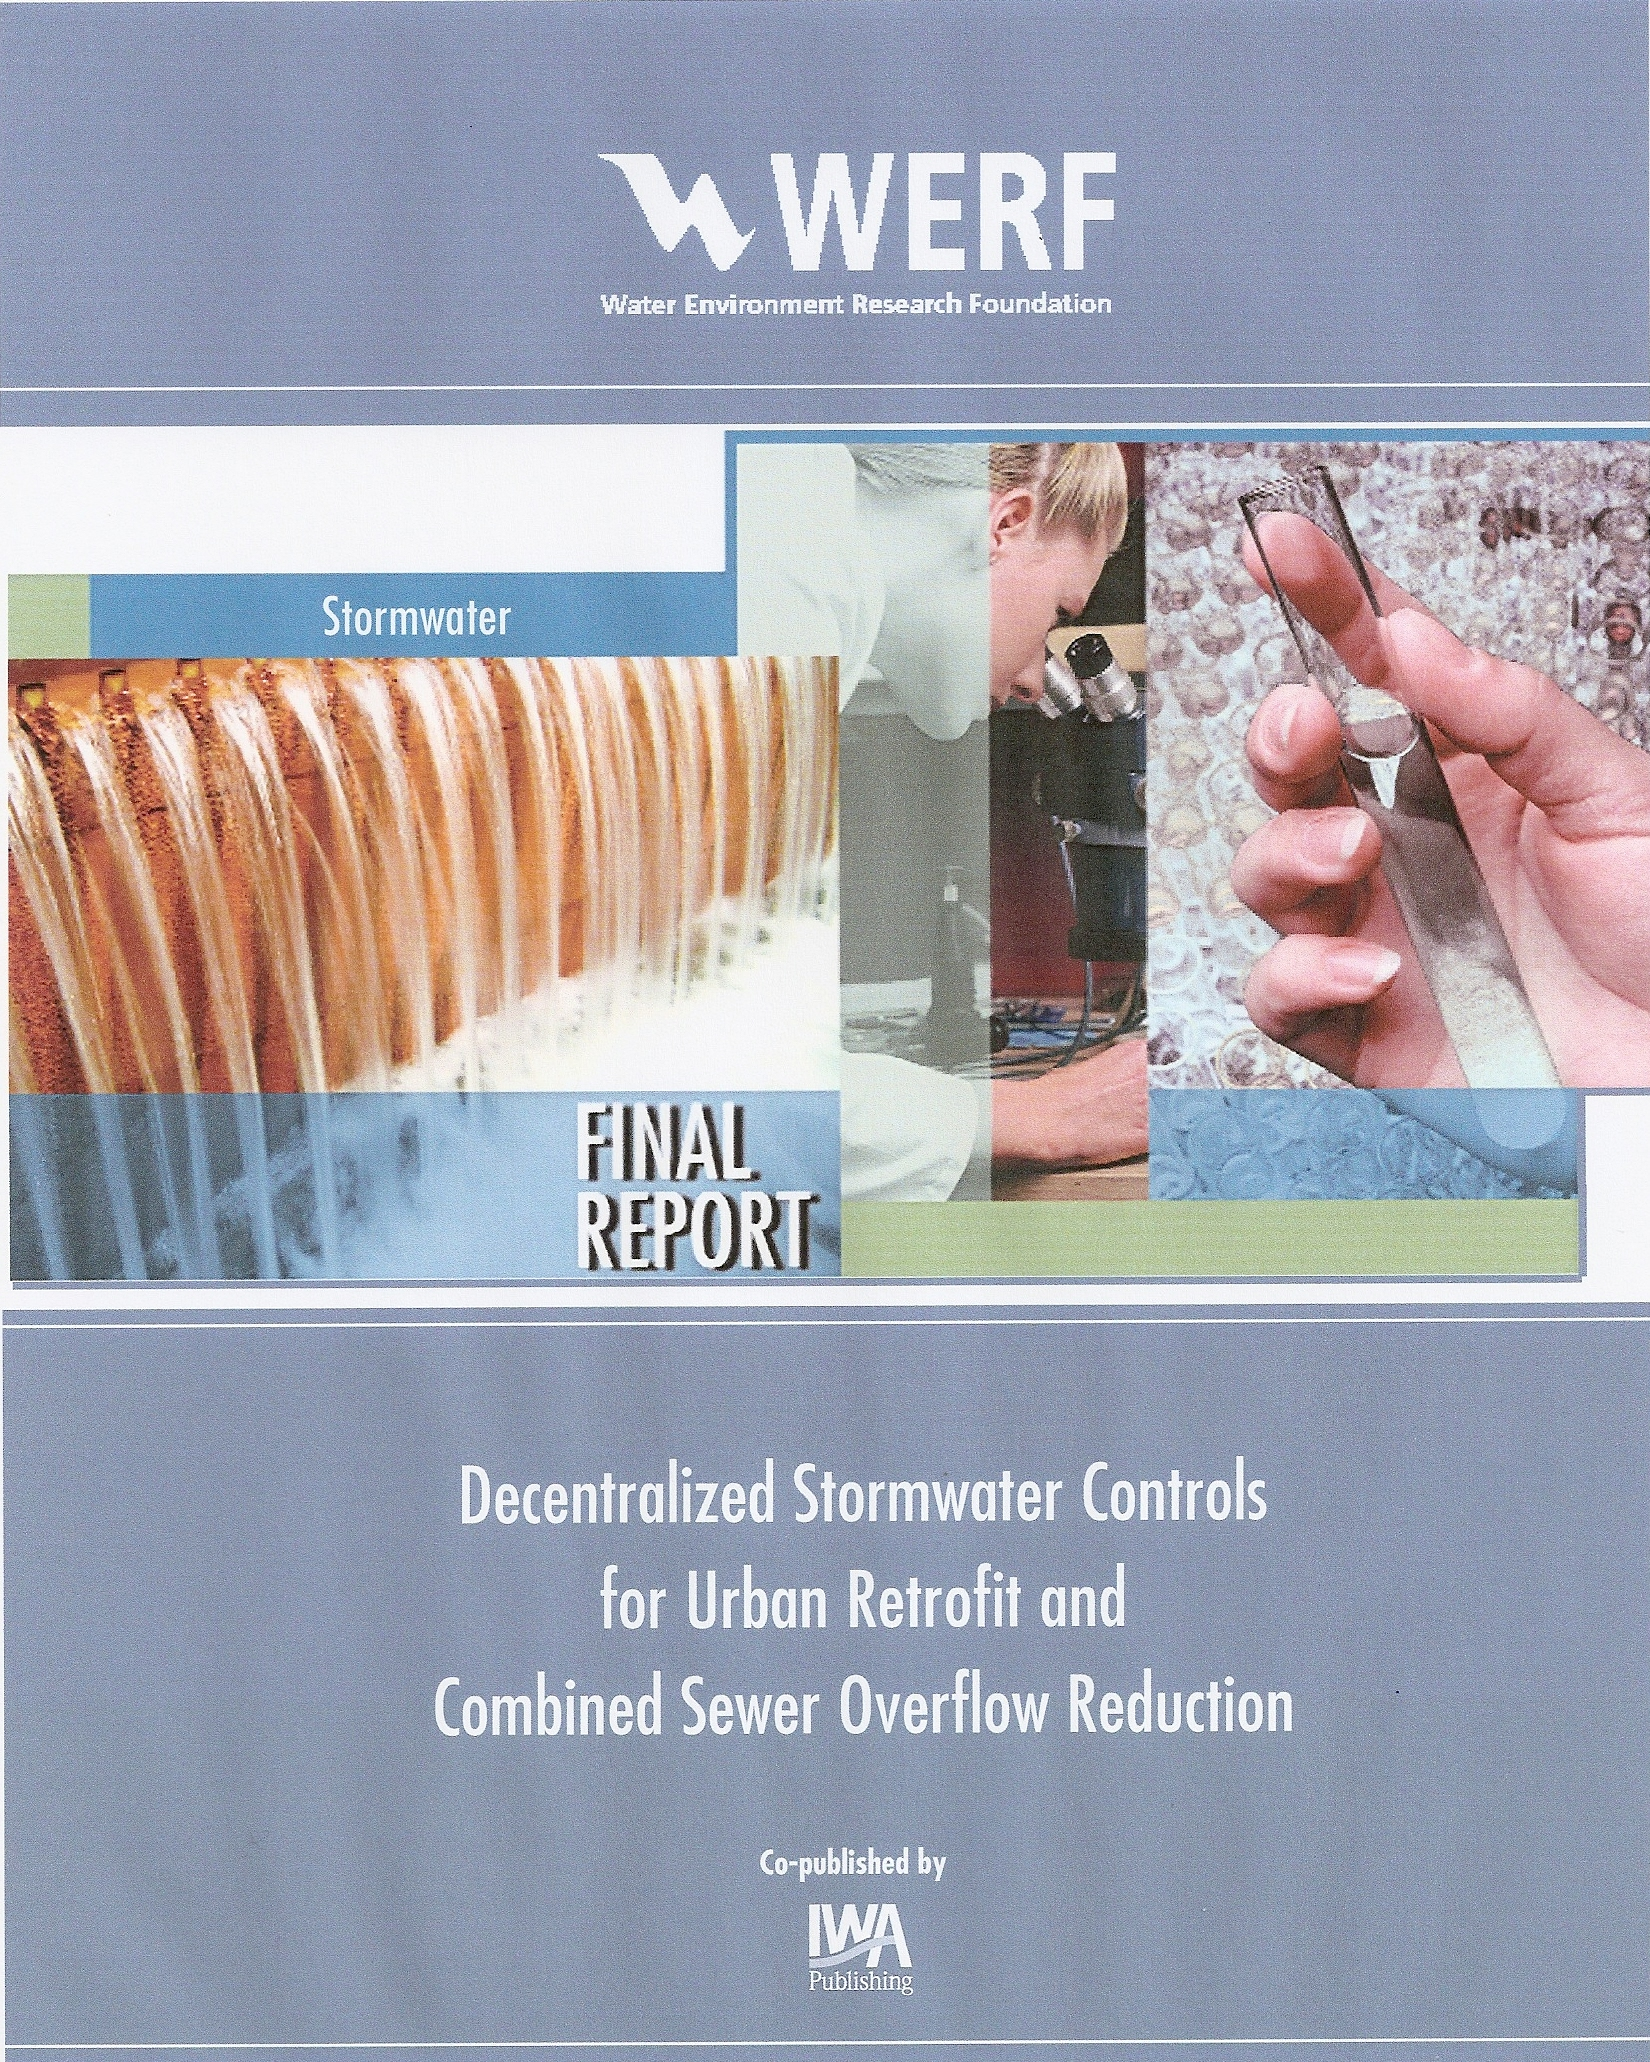 WERF_Decentralized-Stormwater-Controls_2006_cover